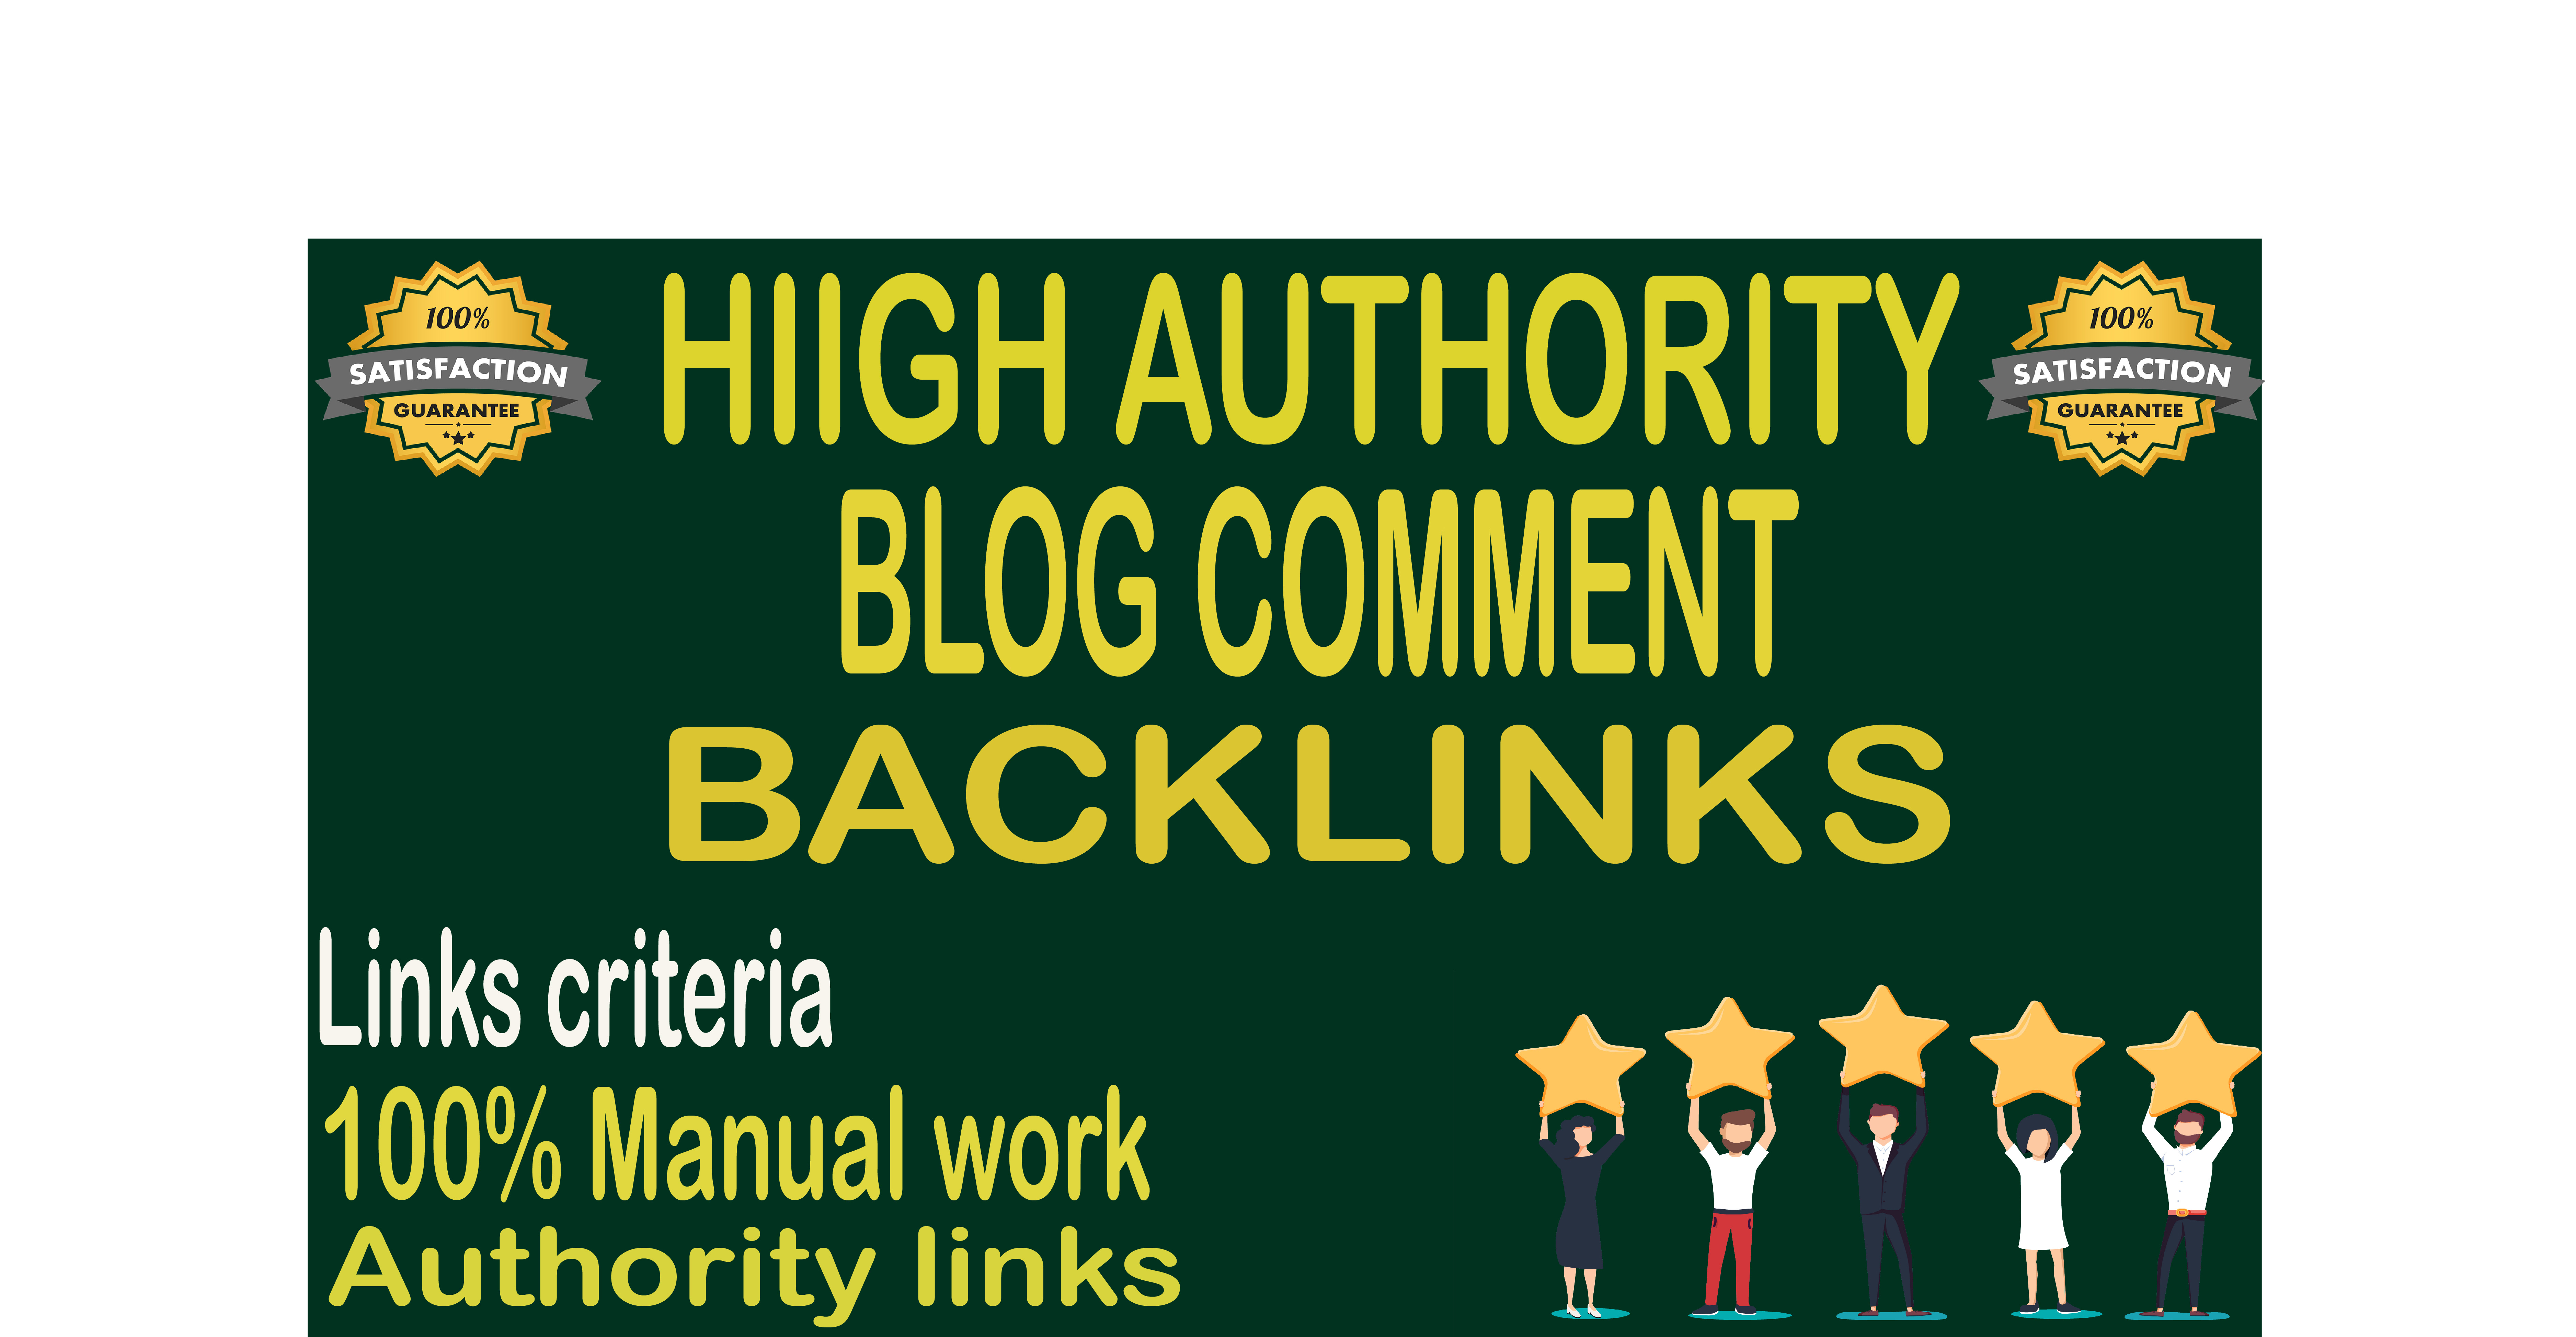 Create 100 blog comment backlinks on the actual page